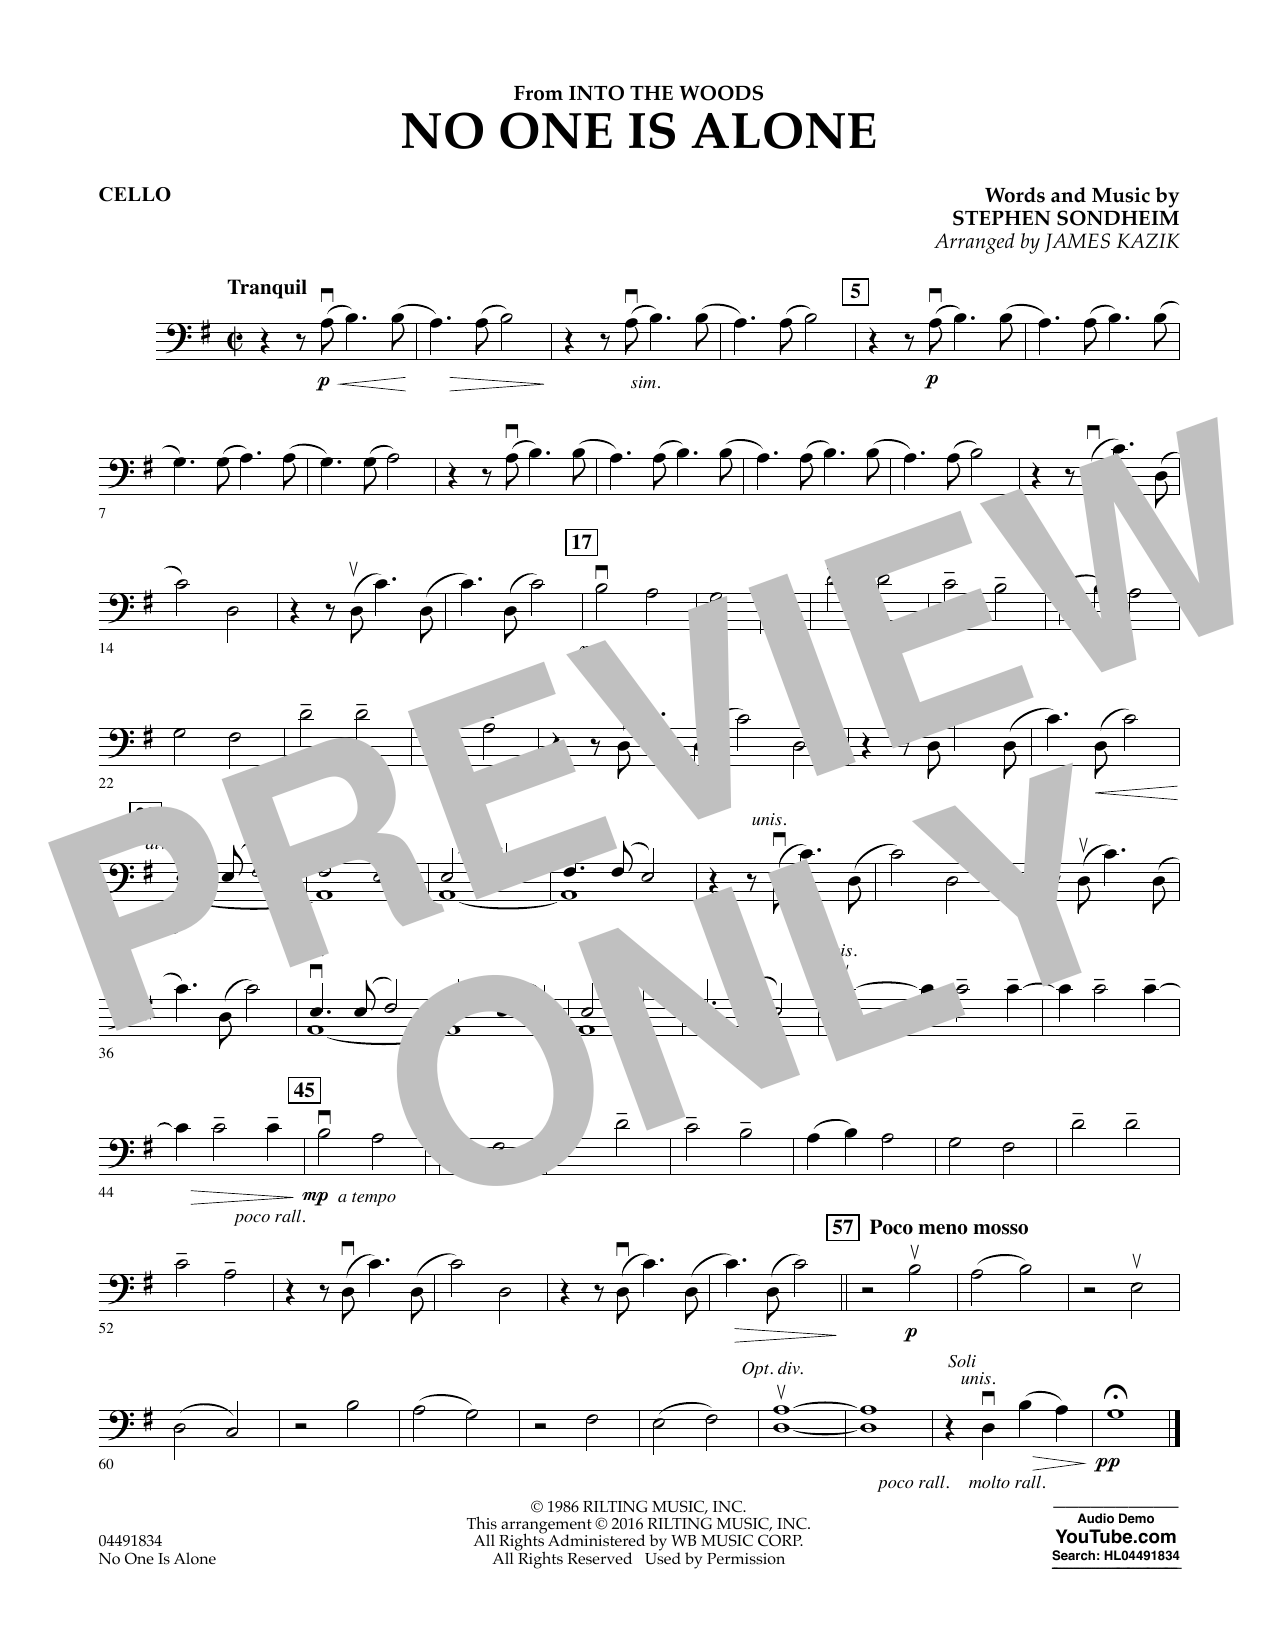 No One Is Alone (from Into The Woods) - Cello Sheet Music